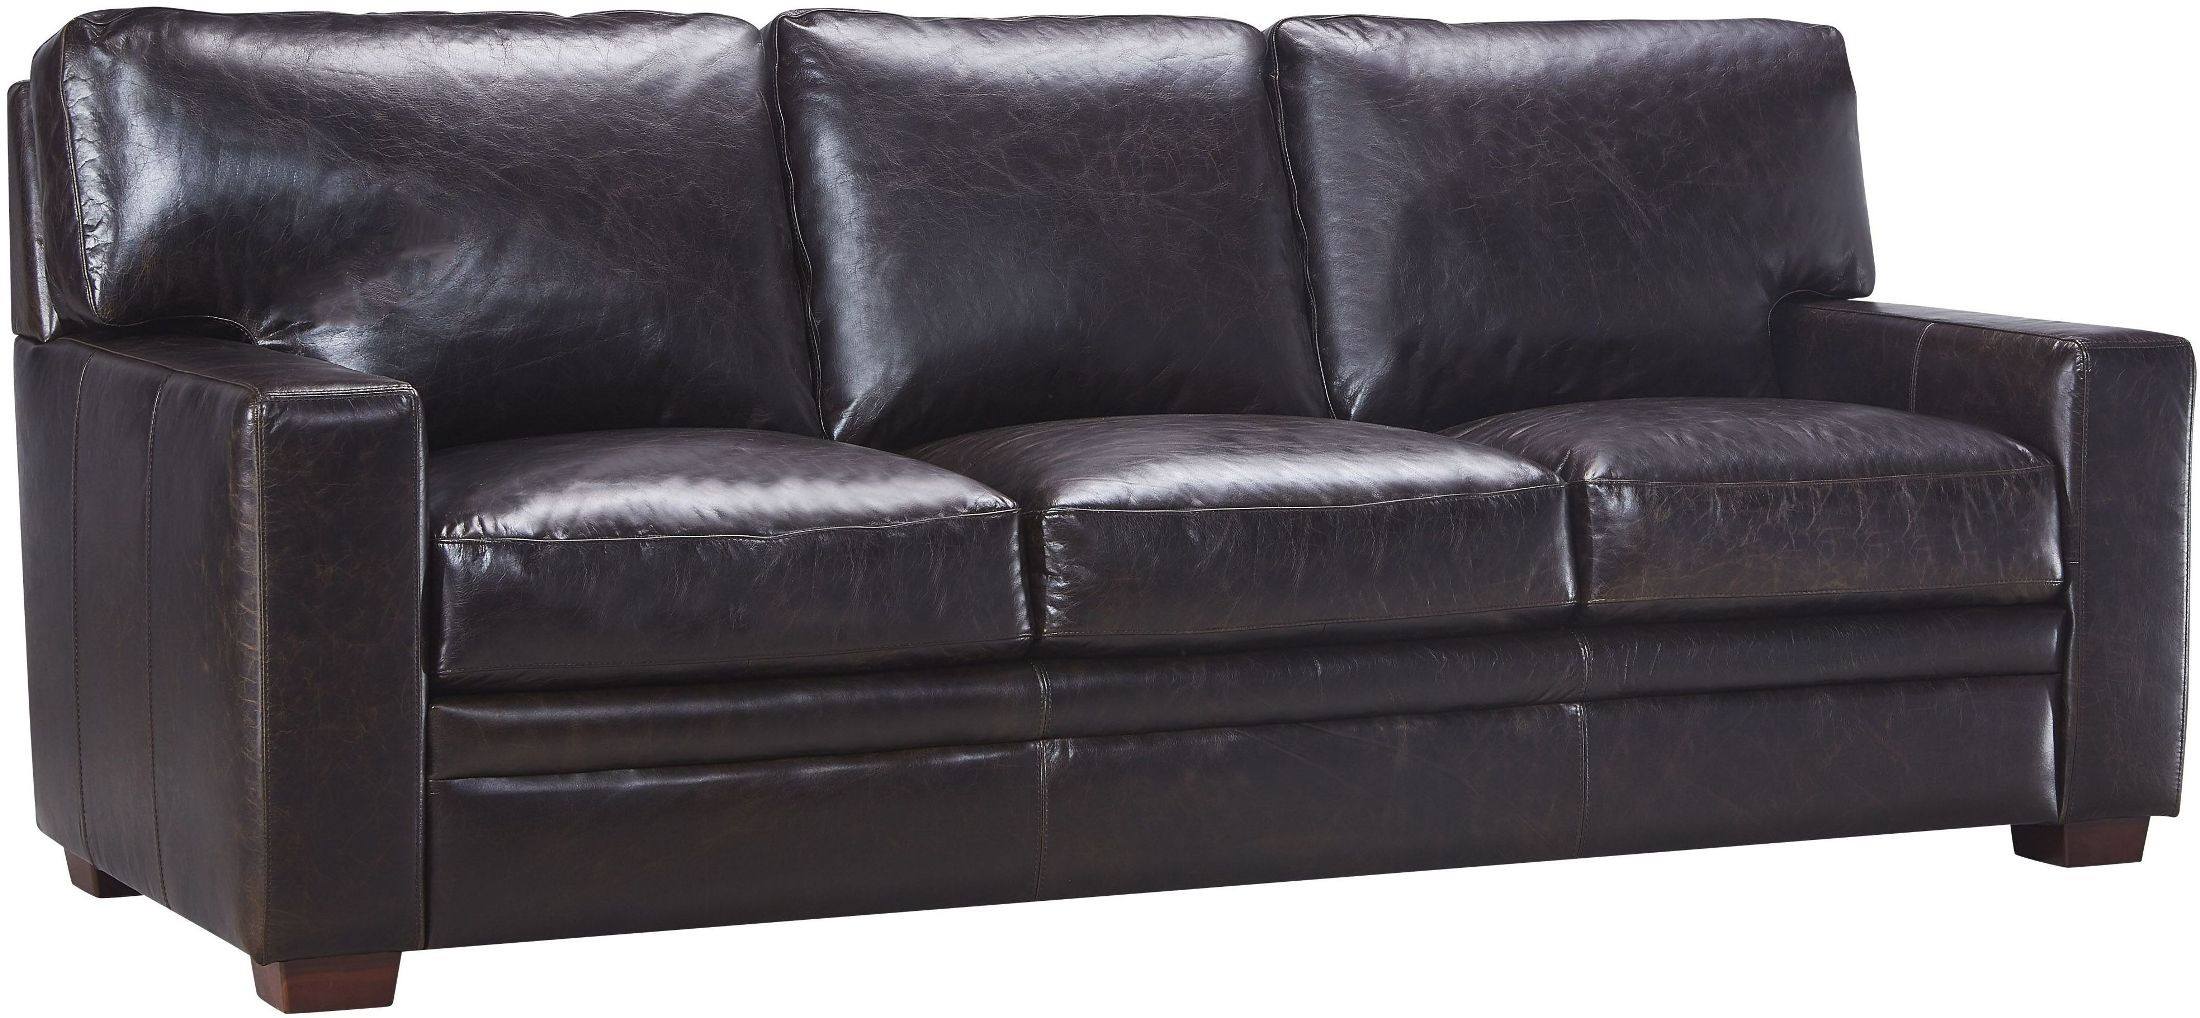 Georgetowne Norman Dark Brown Leather Sofa 1669 2005b 039770 Leather Italia